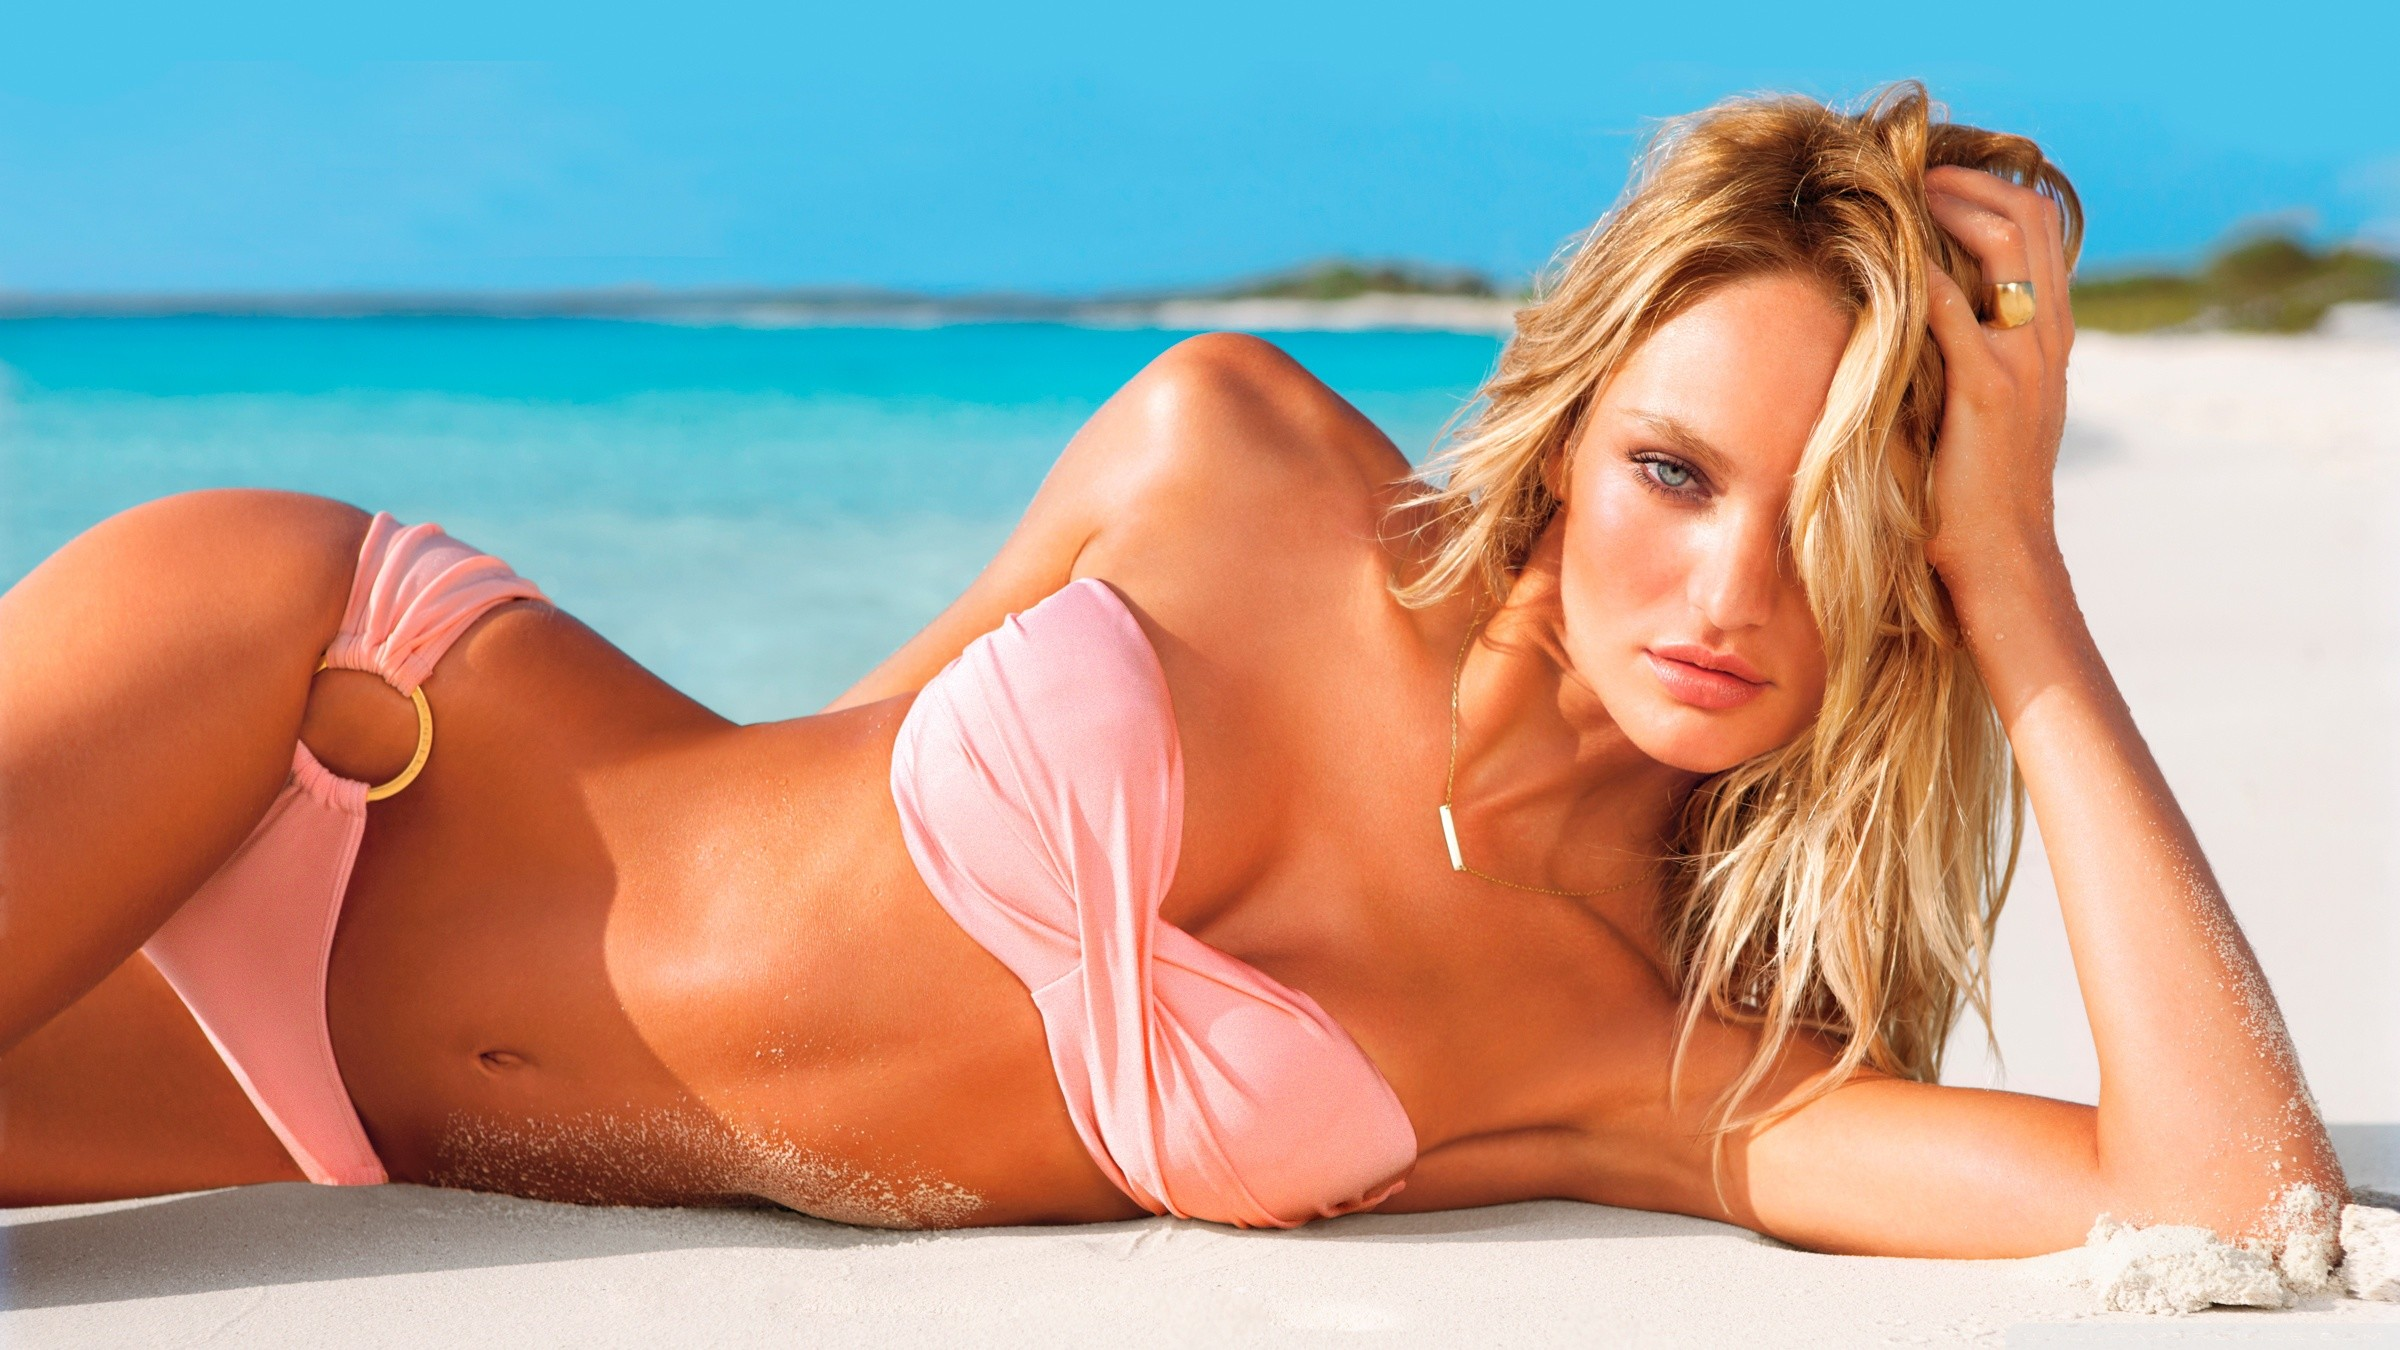 Candice Swanepoel Hot for Victoria's Secret Swimsuit 2012 HD Wide Wallpaper  for Widescreen